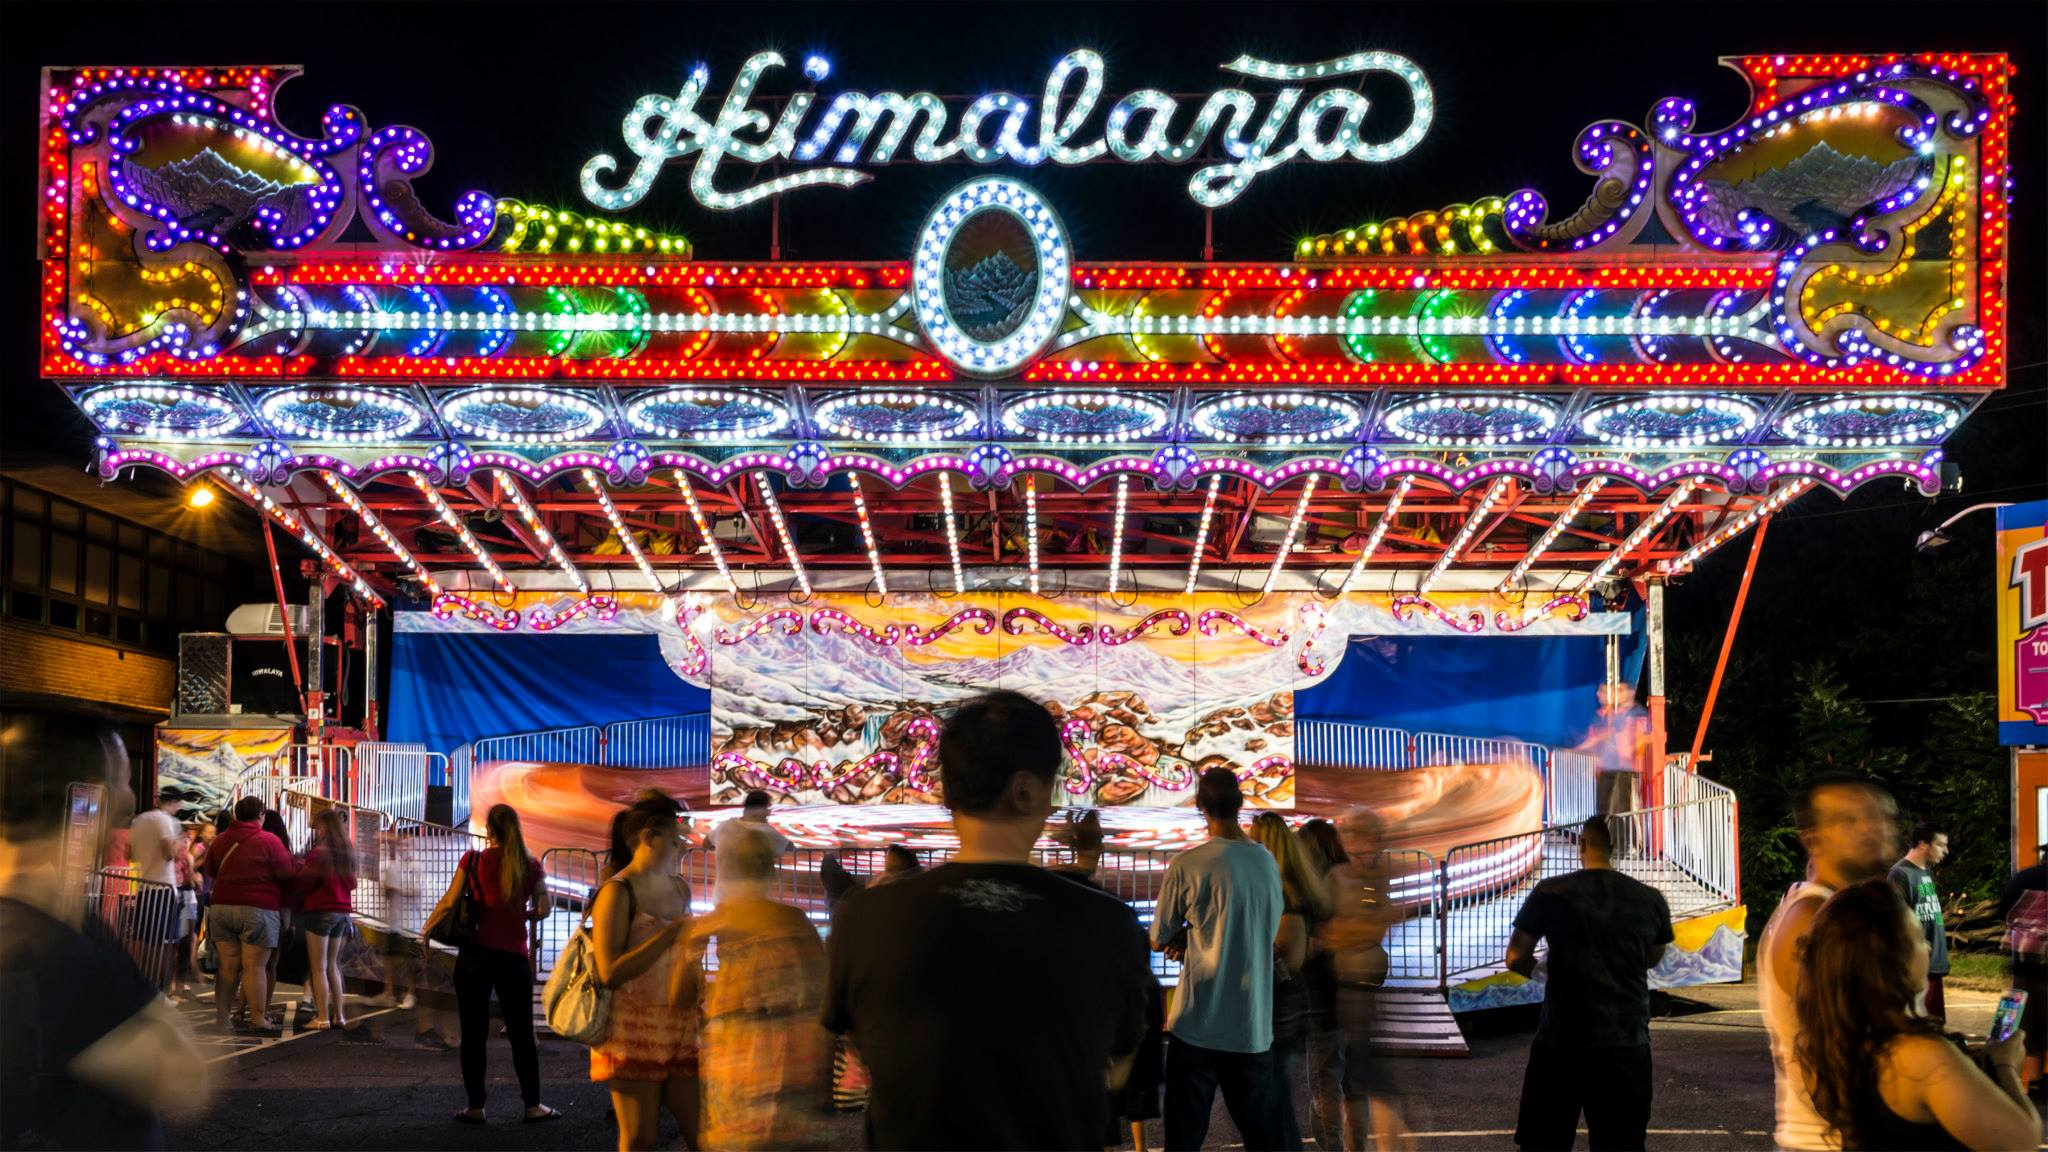 Photographer Captures Stunning Images Of St. Michael's Fair